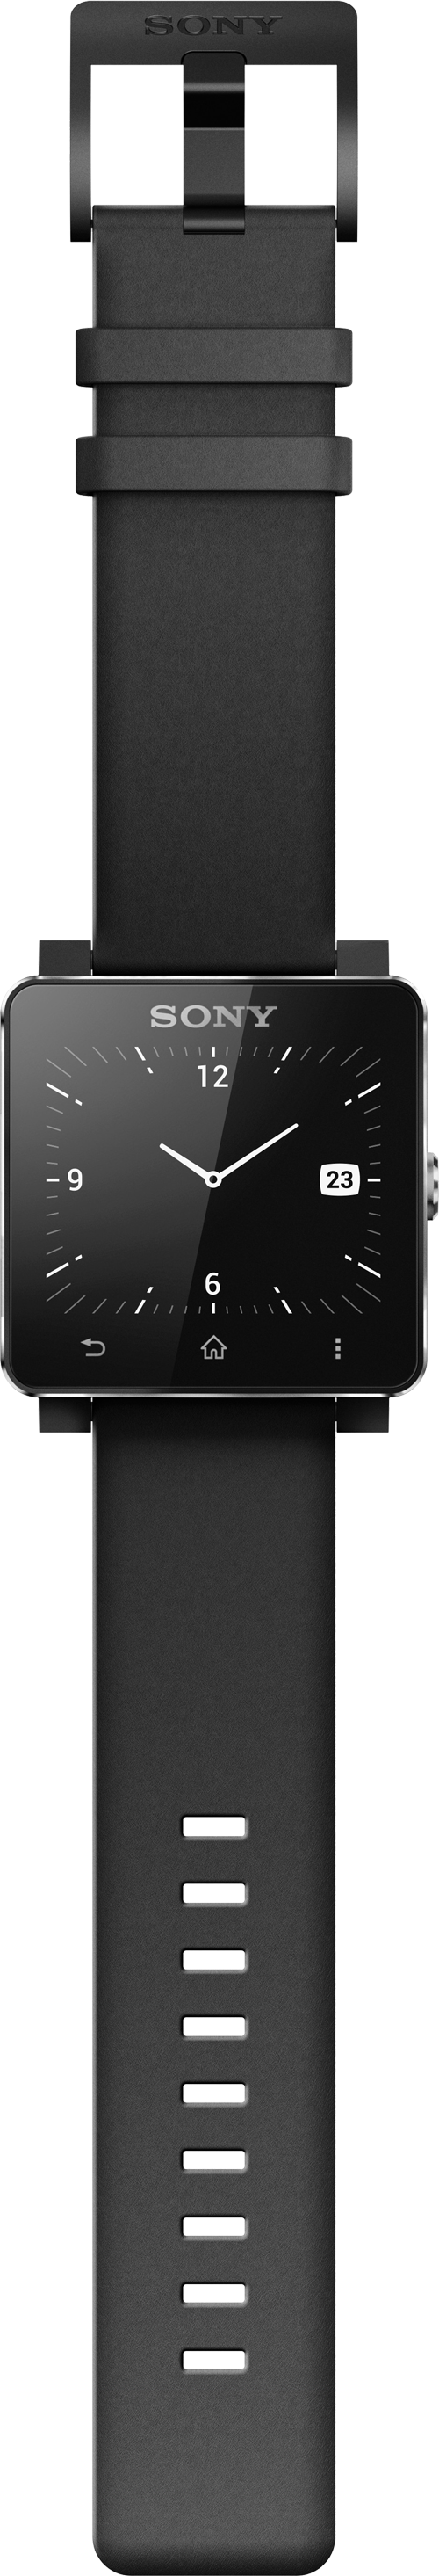 6_SmartWatch_2_Open_Front.png